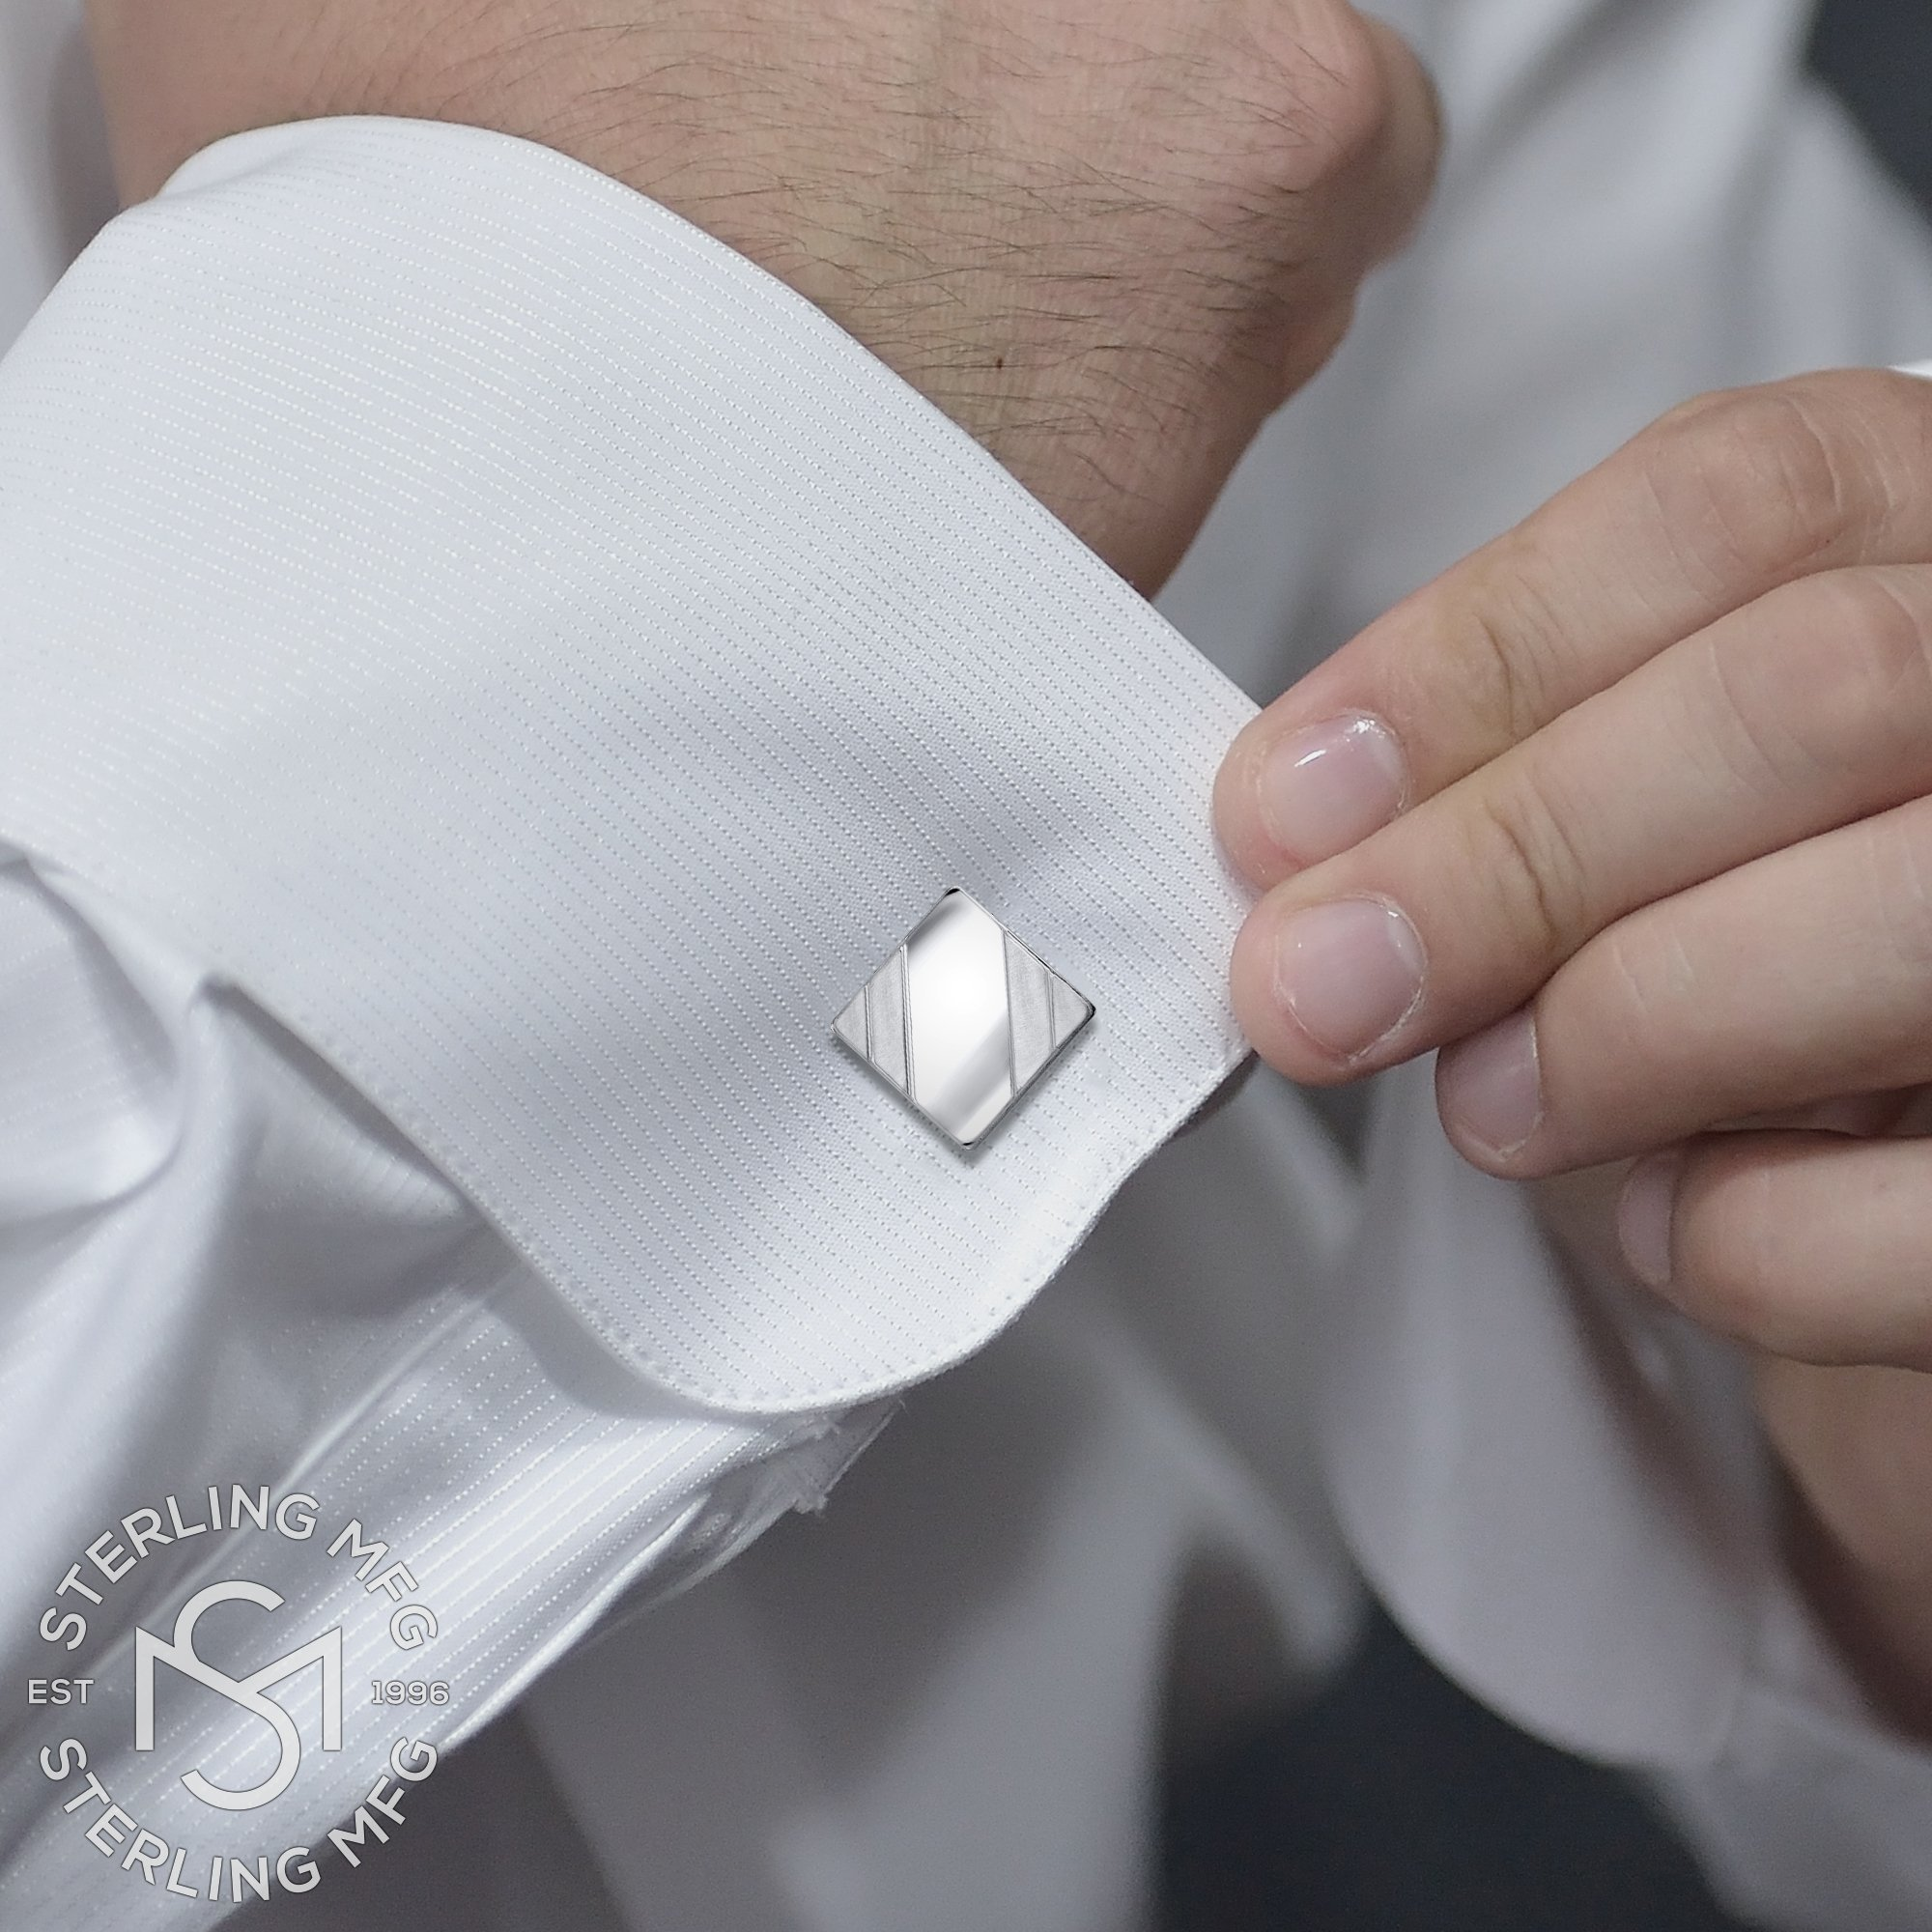 Men's Sterling Silver .925 Square Cufflinks with Satin Finish Accents in Two Corners, Engravable. Made In Italy. 14mm by Sterling Manufacturers (Image #4)